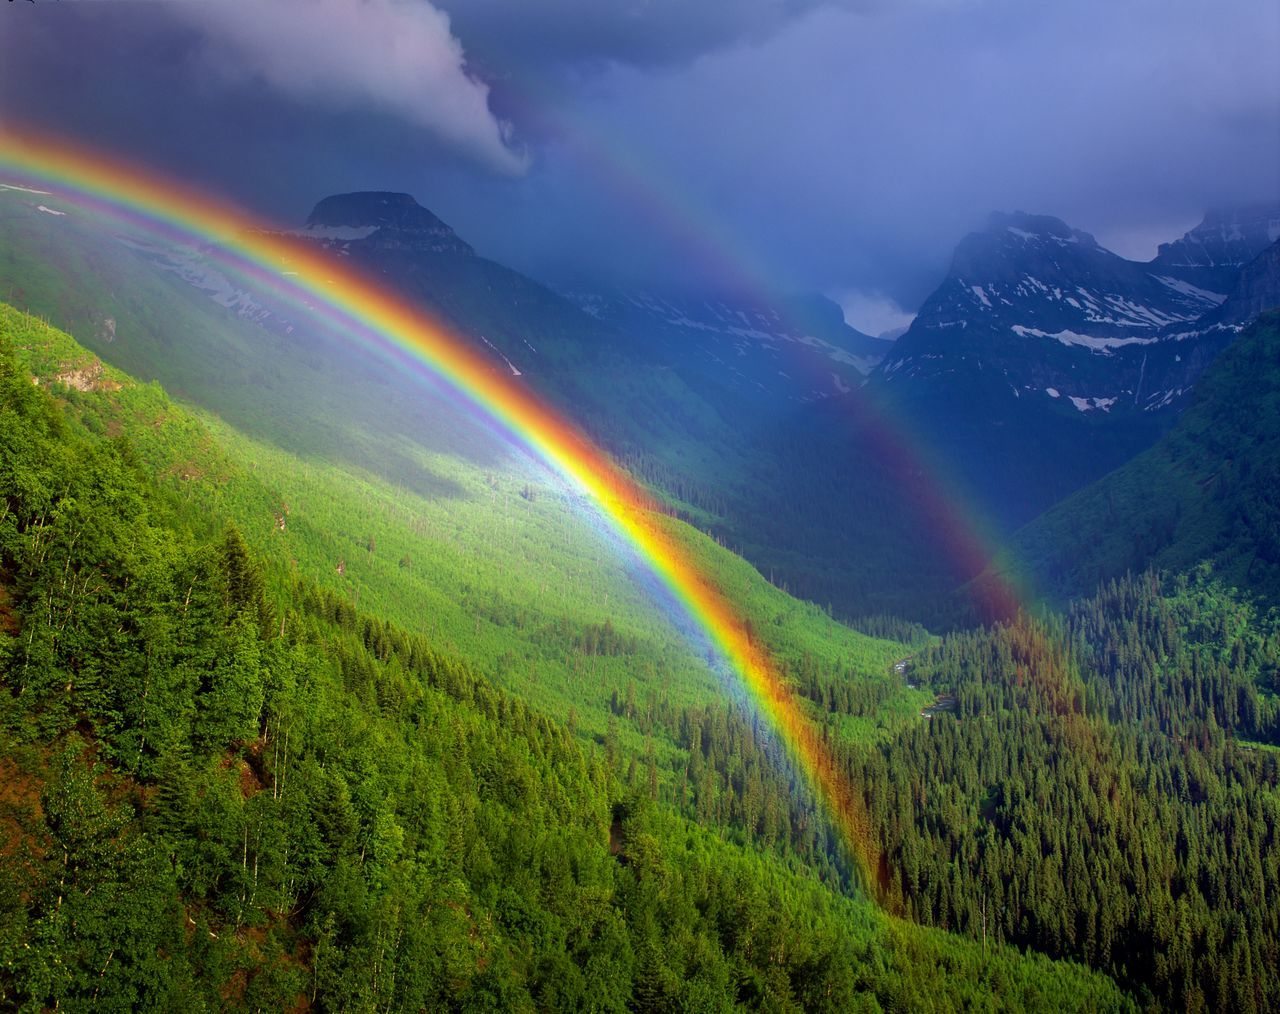 rainbow, beauty in nature, nature, weather, scenics, mountain, double rainbow, tranquil scene, tranquility, no people, landscape, cloud - sky, outdoors, multi colored, sky, day, spectrum